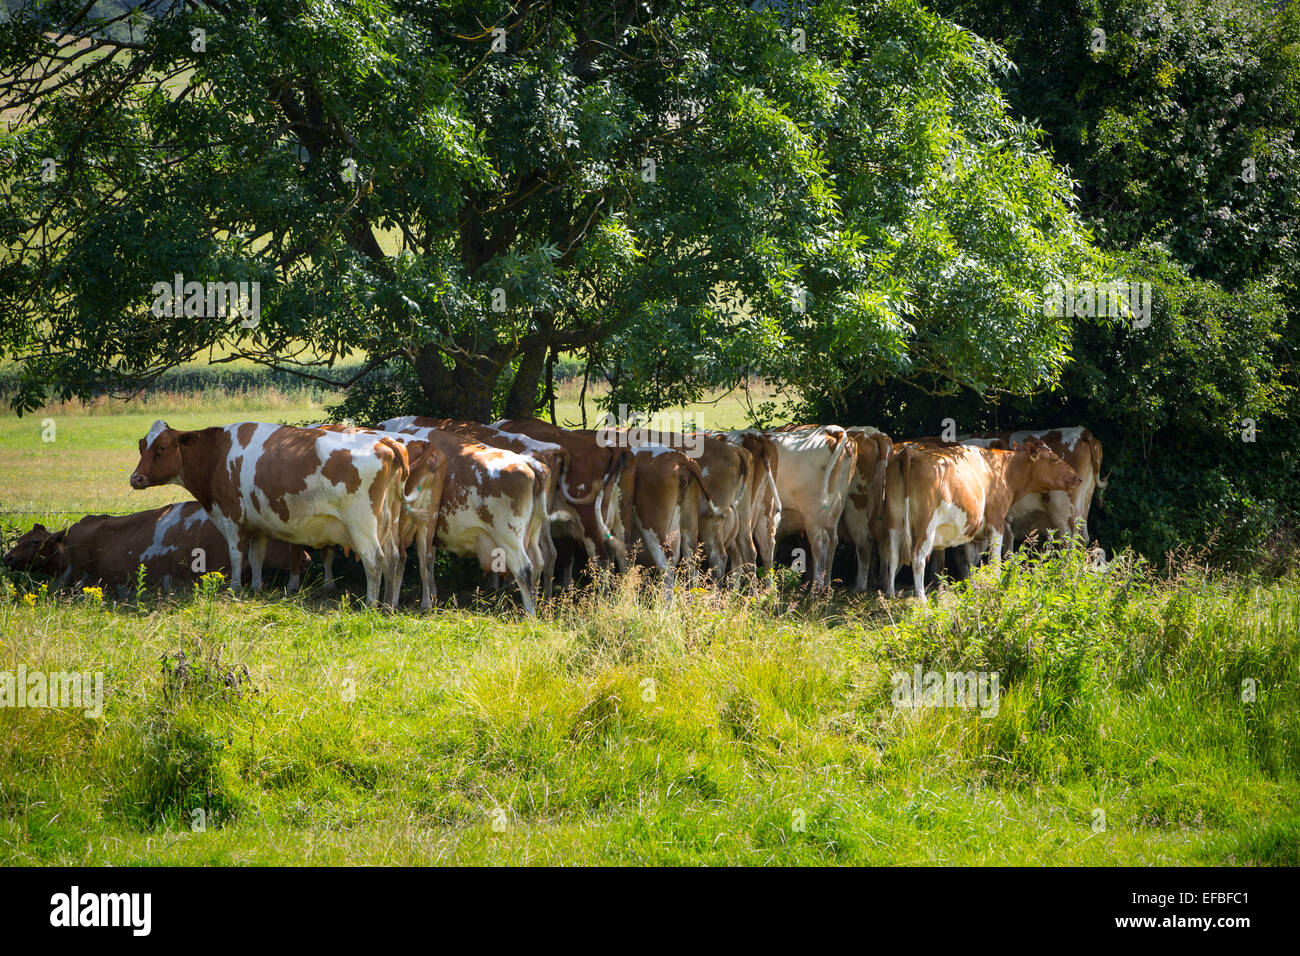 Herd of cows standing in shade of trees in rural summer meadow, Oxfordshire, England - Stock Image